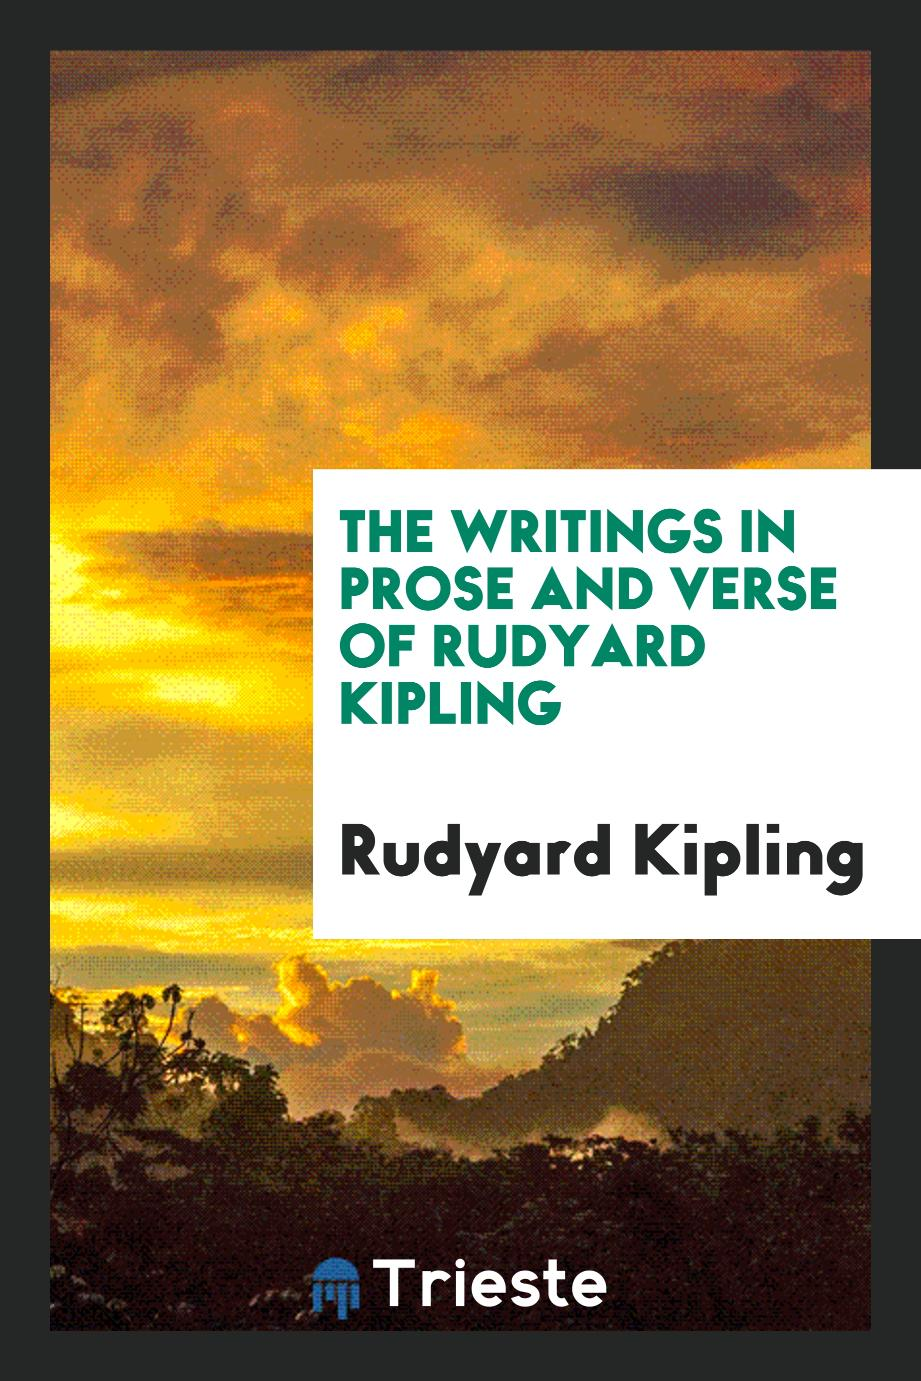 The writings in prose and verse of Rudyard Kipling